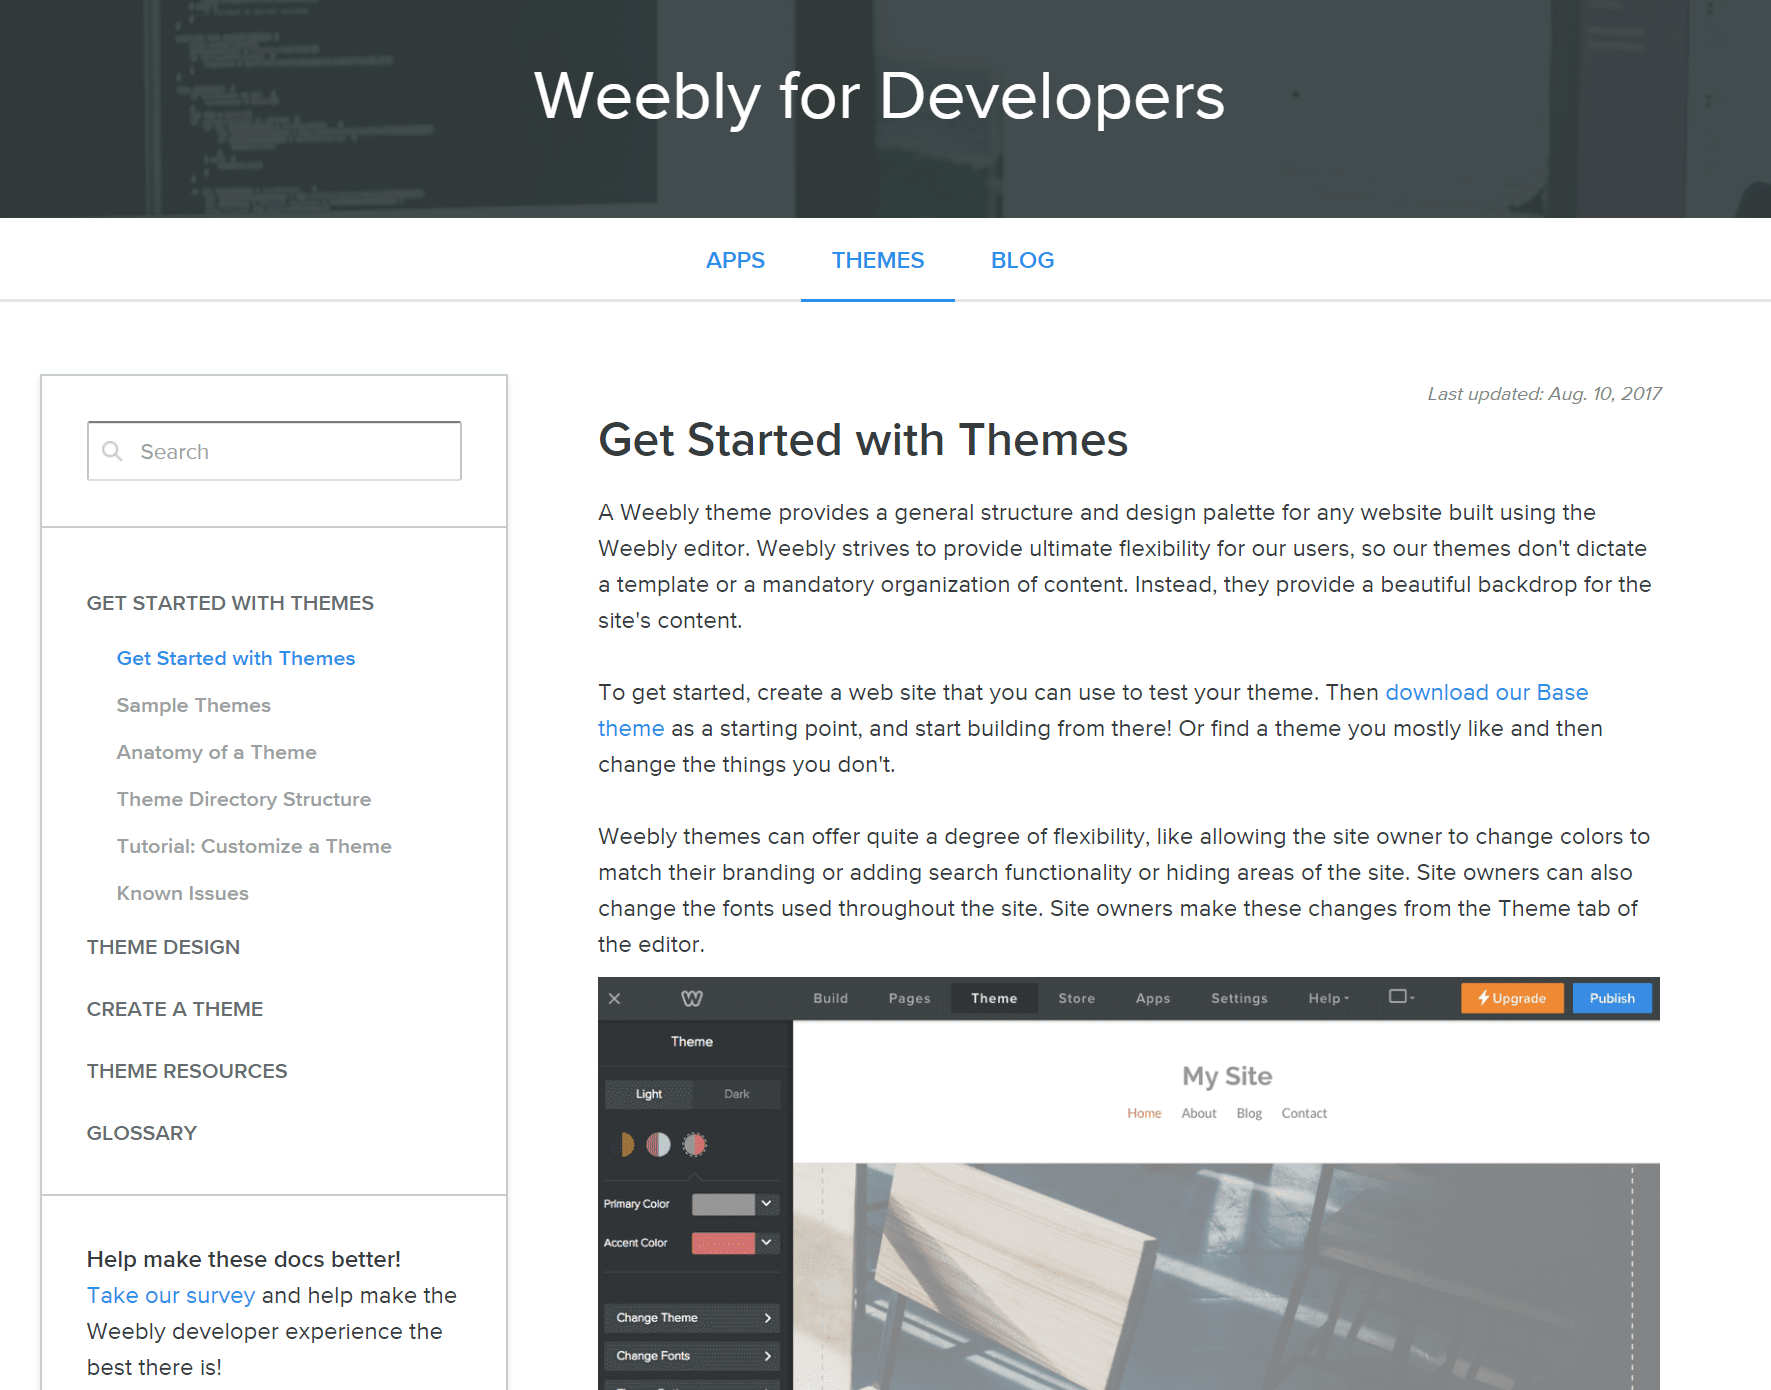 Weebly Developer Center